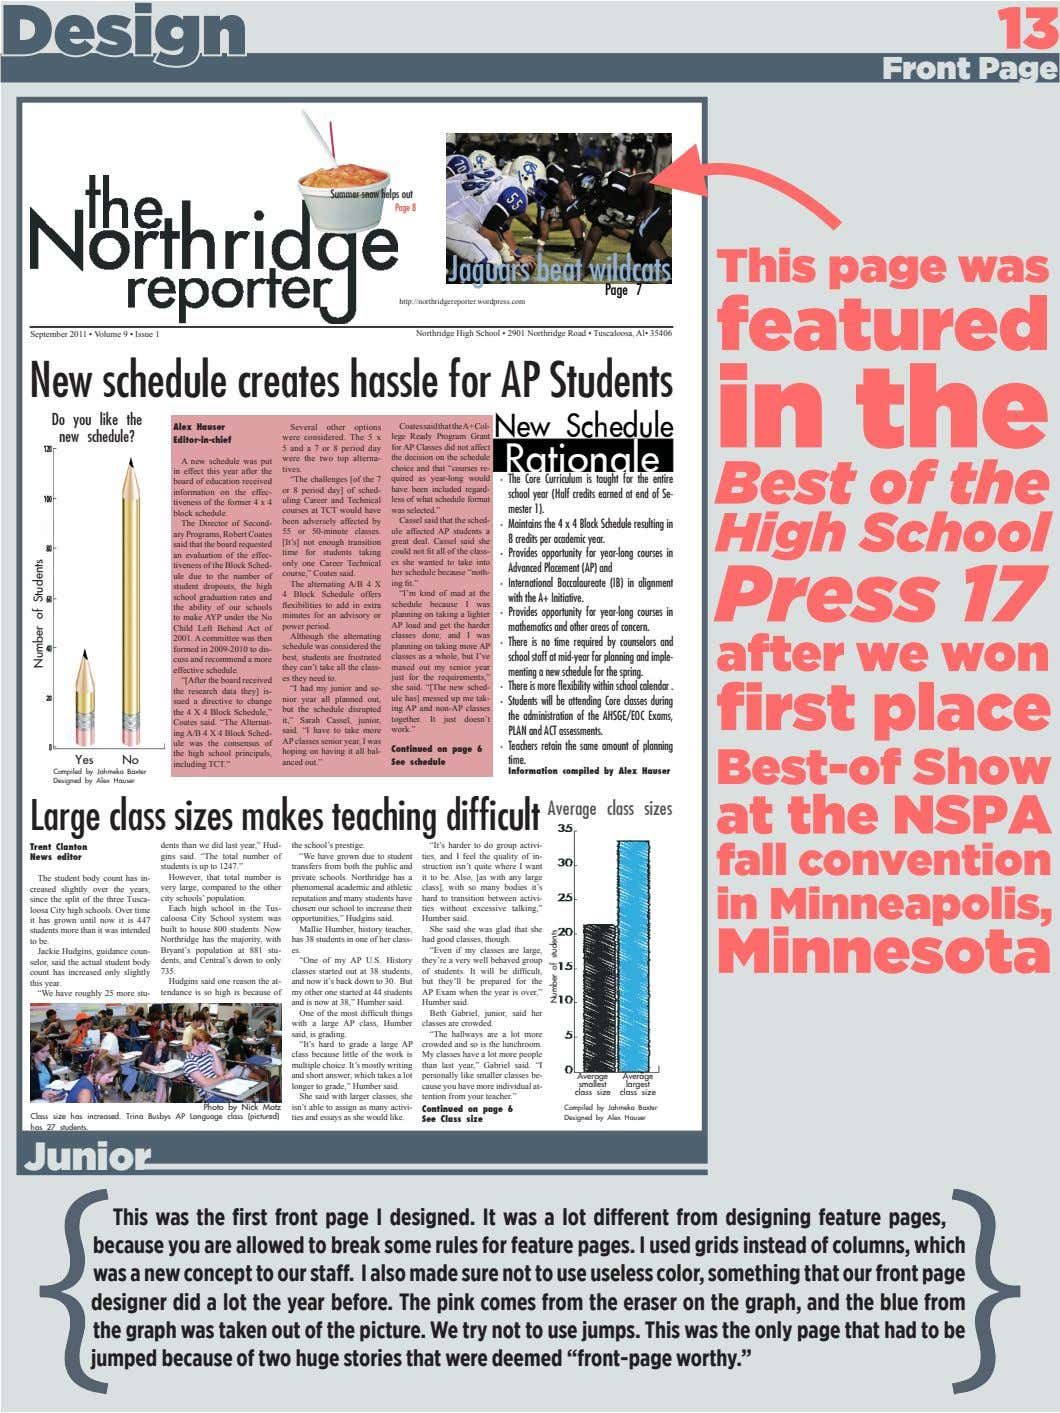 Design 13 Front Page Summer snow helps out Page 8 Jaguars beat wildcats This page